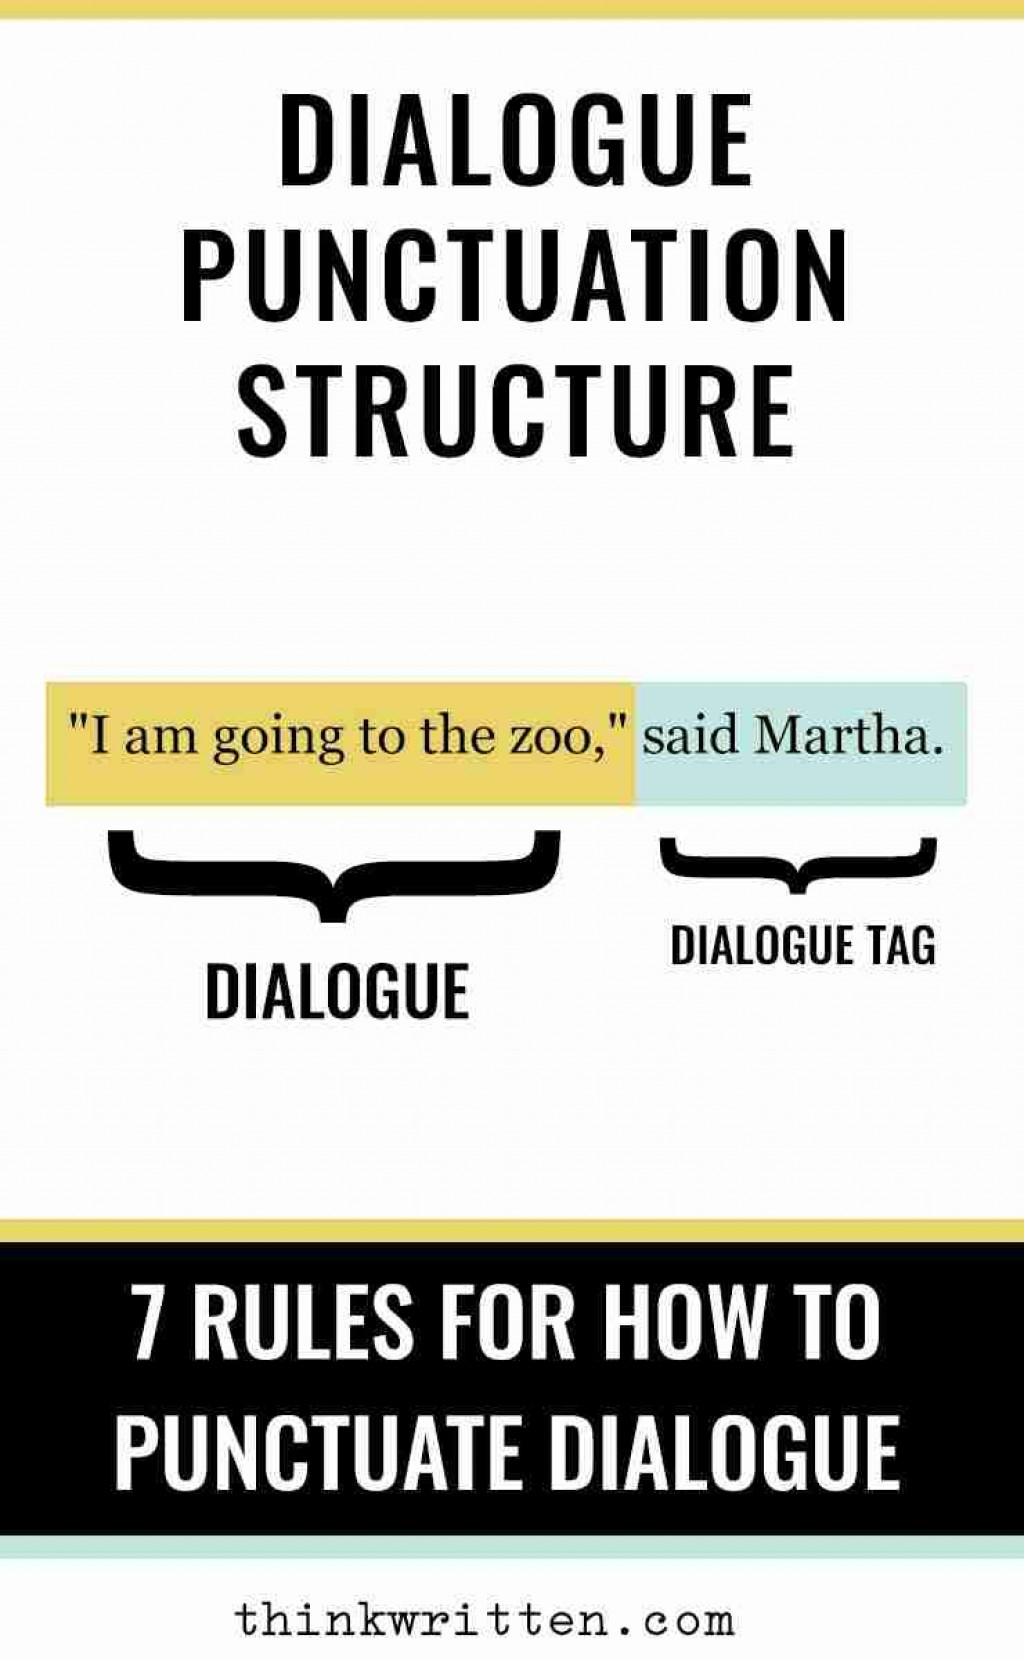 012 Dialogue Punctuation Structure When Quoting In An Essay Where Is The Exceptional Large